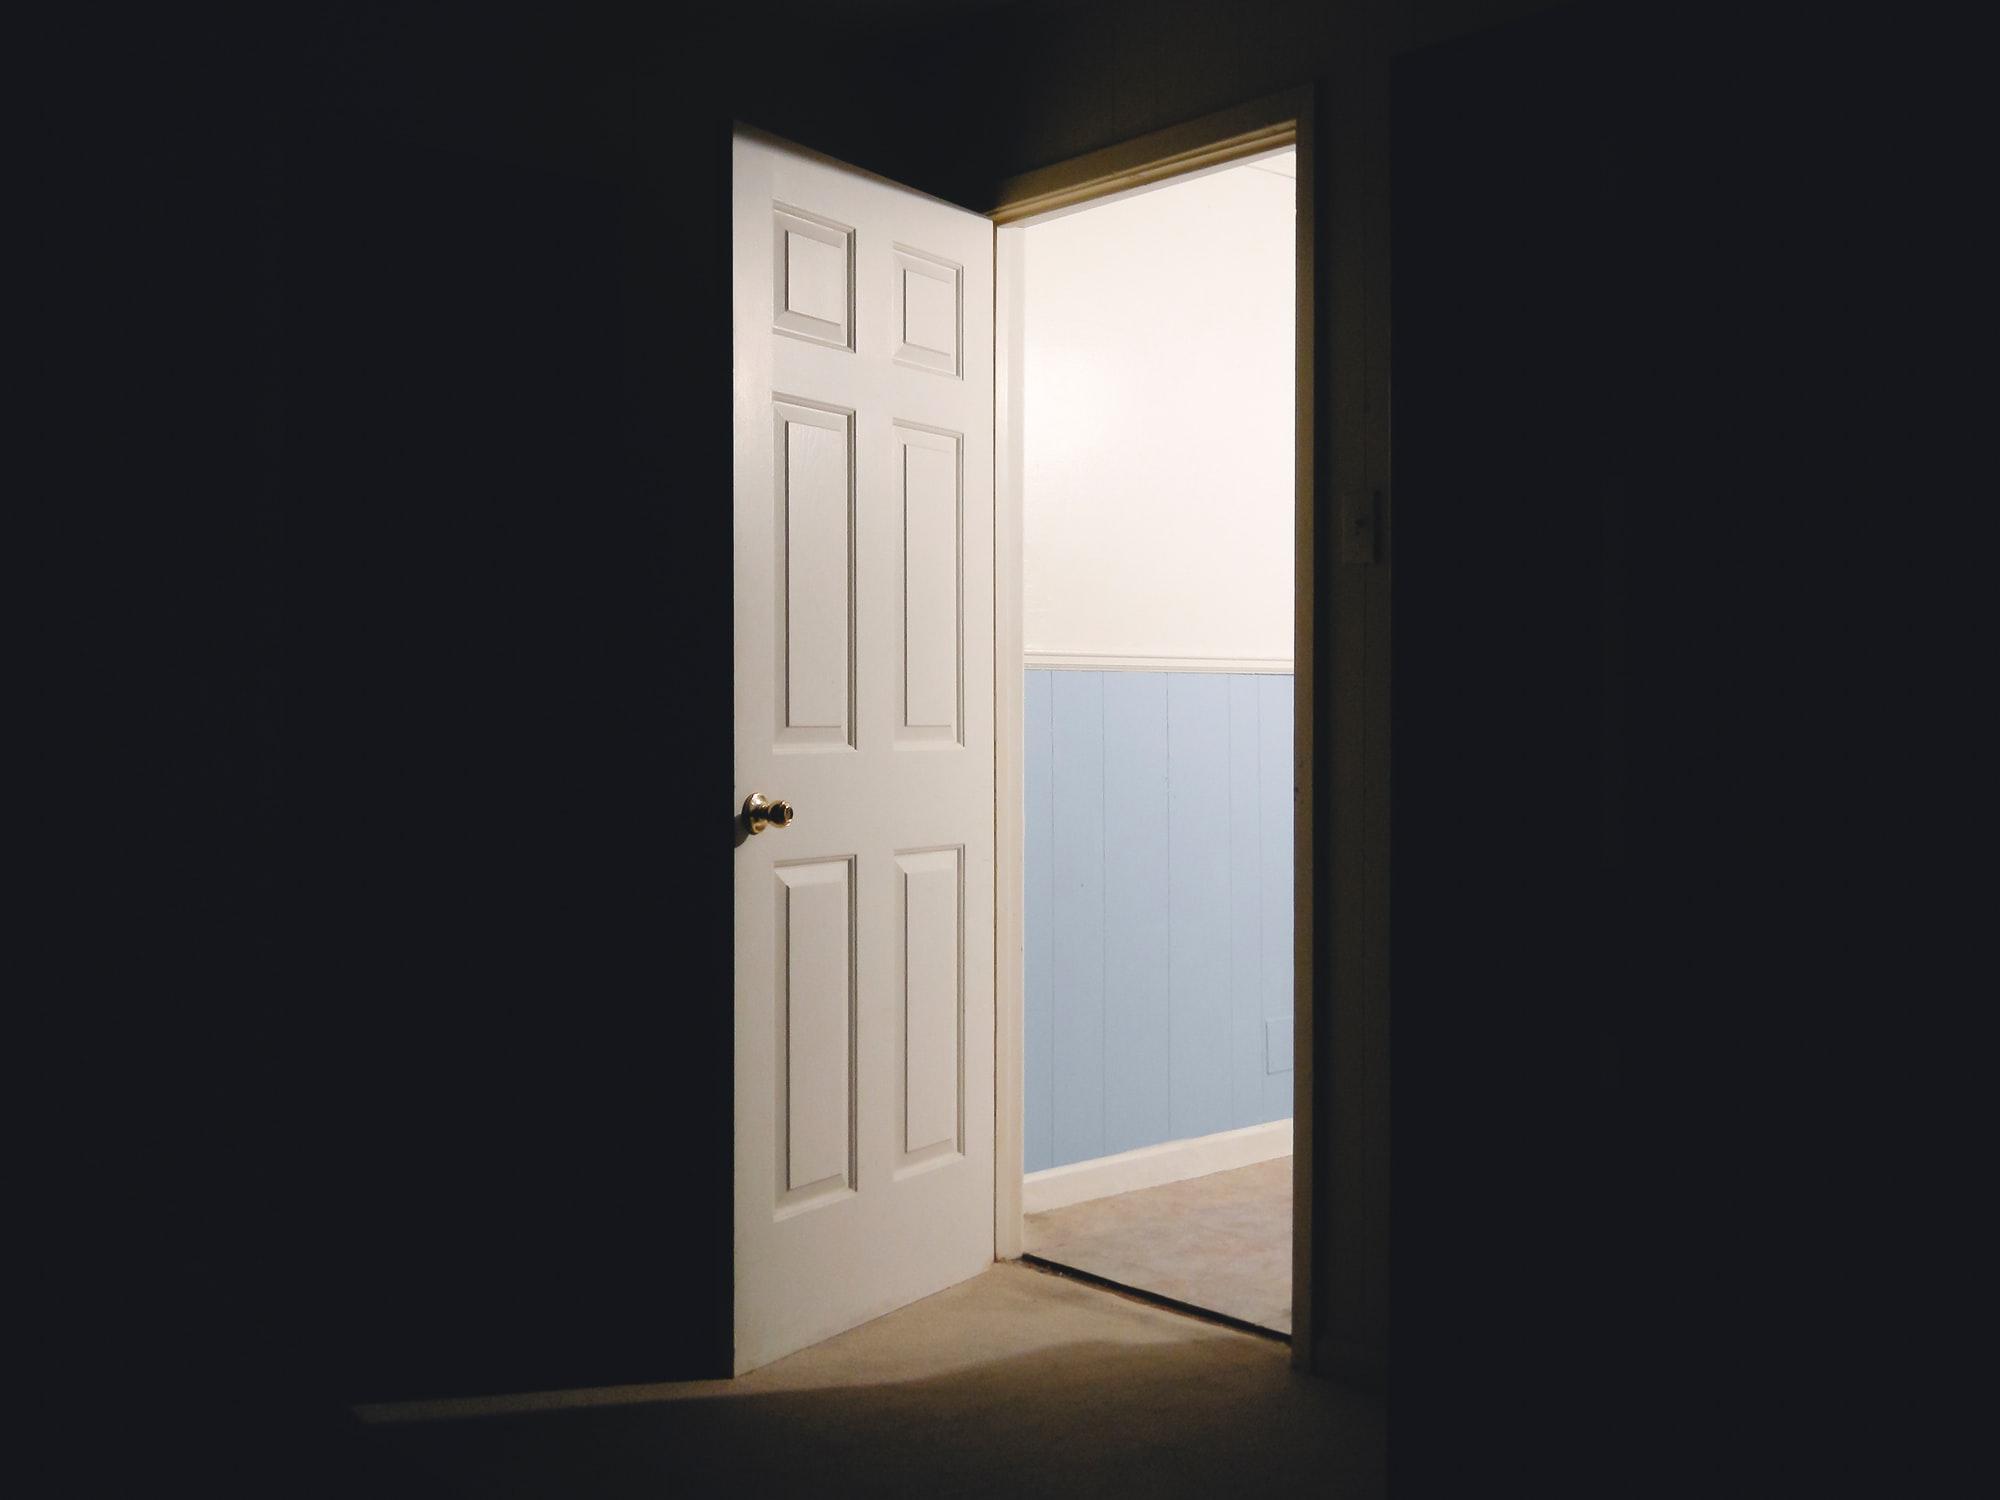 An open door allowing light to shine into a dark room  | Please check out my blog at: matthewtrader.com/unsplash